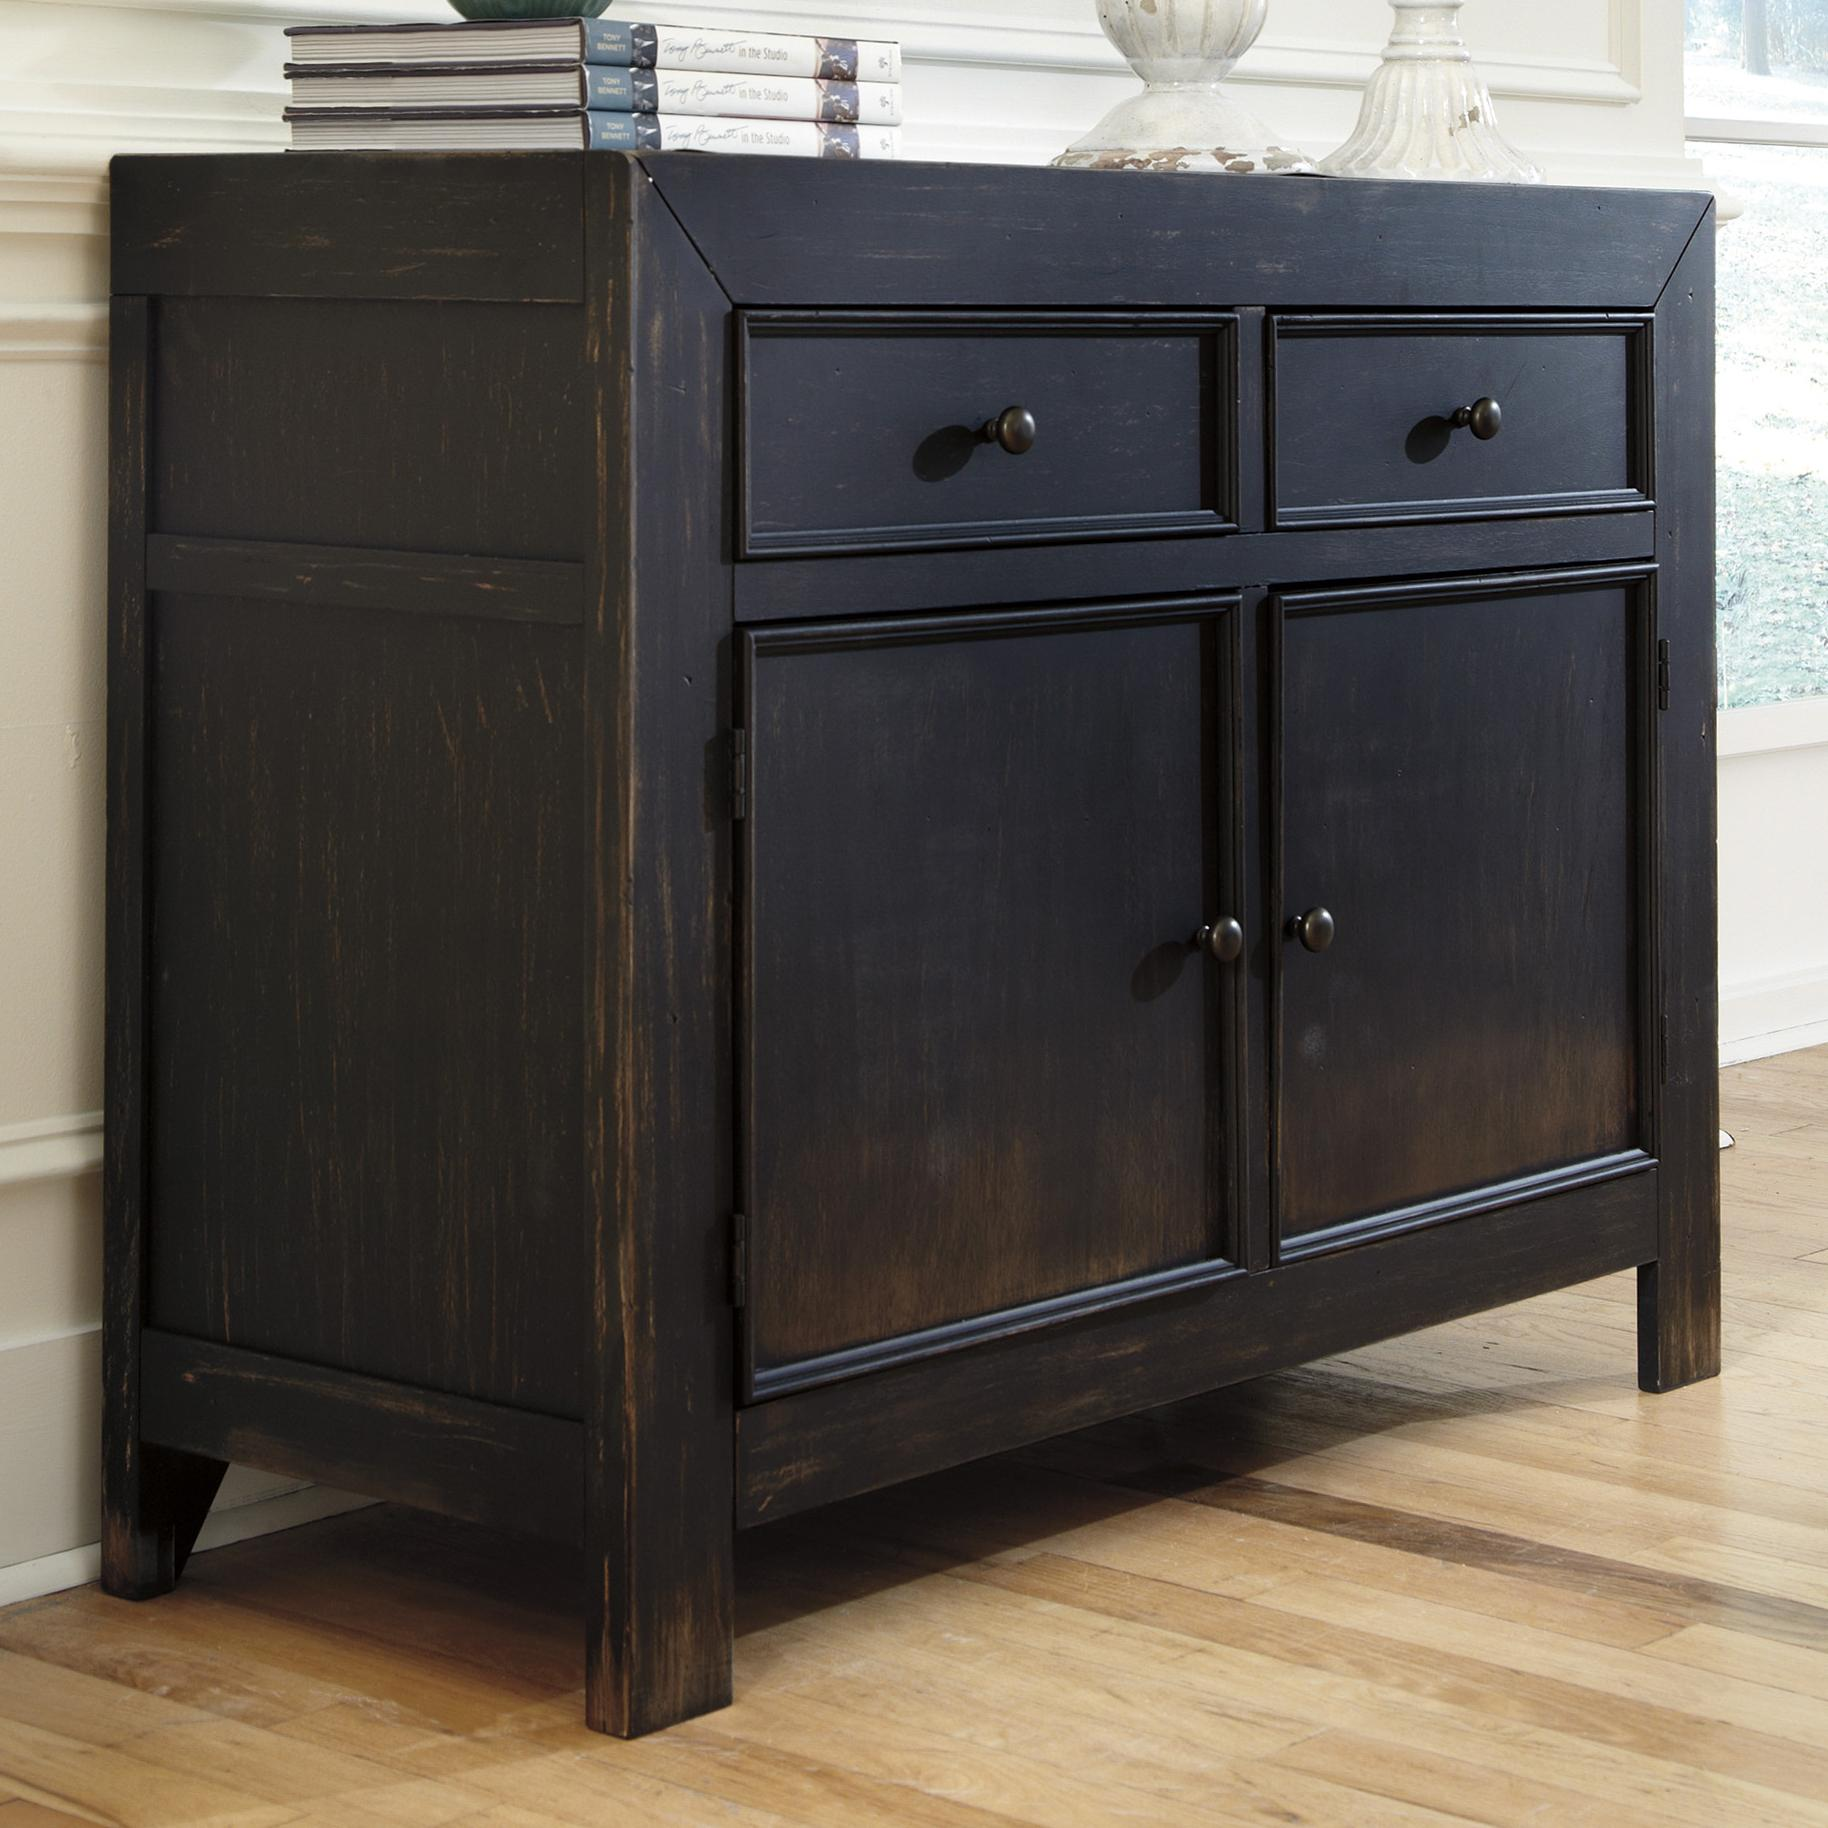 Signature Design by Ashley Gavelston Accent Cabinet - Item Number: T732-40